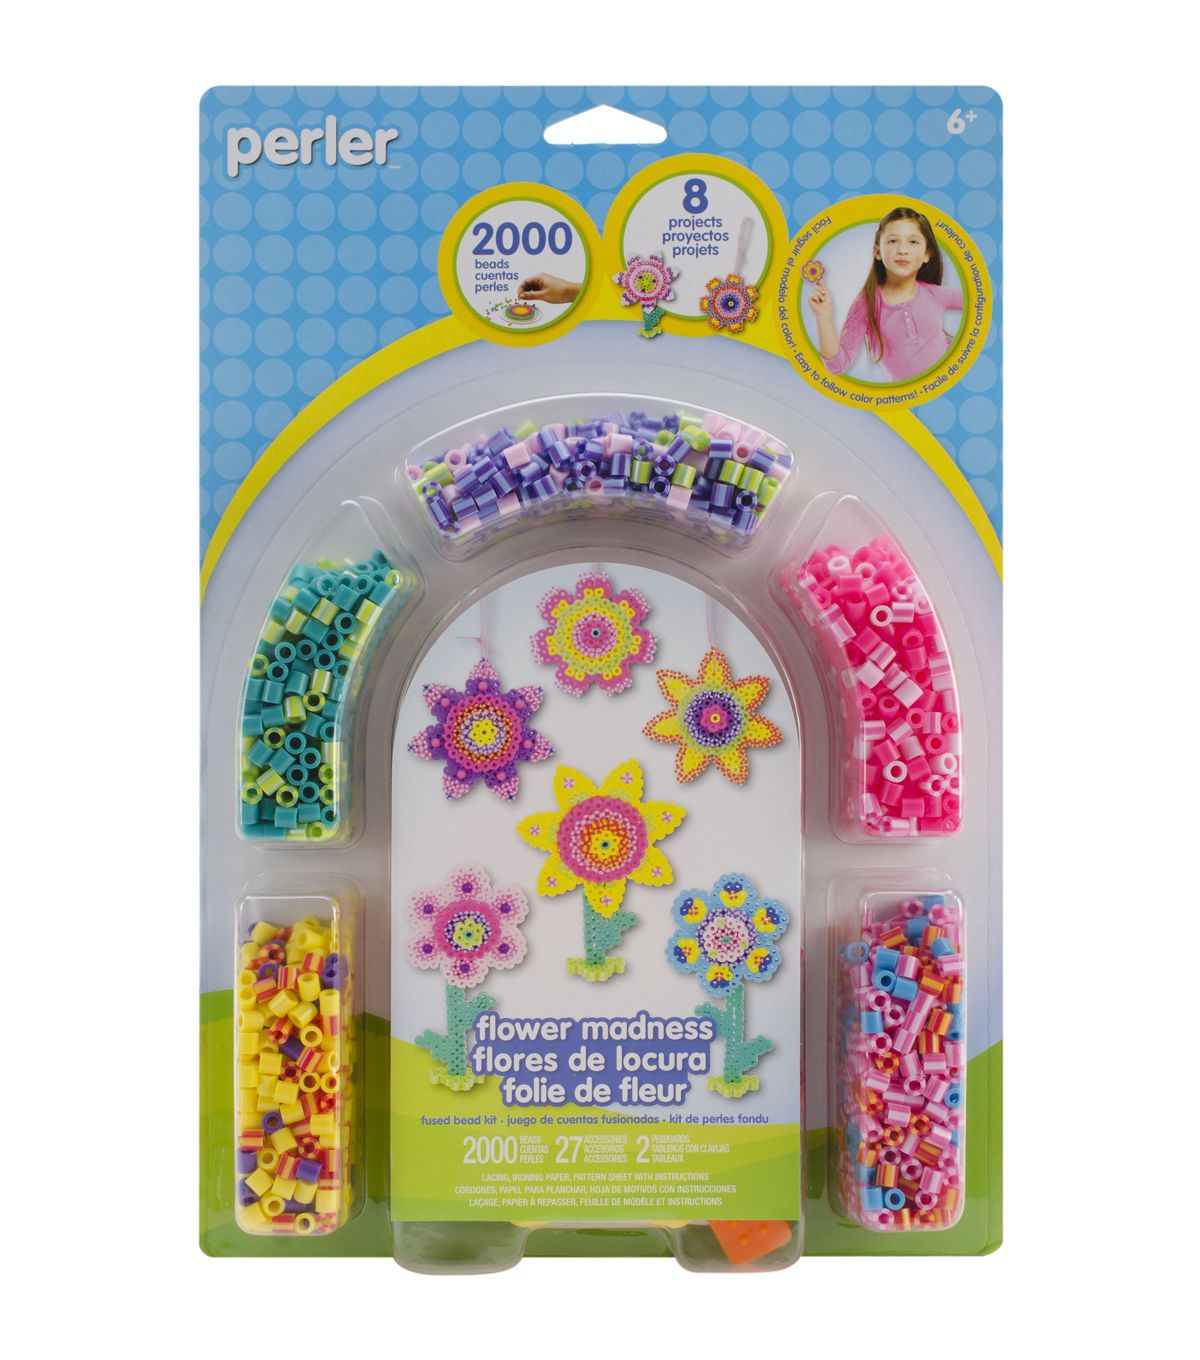 a01937818 Perler Bead Set - Flower Madness | Products | Bead kits, Fuse beads ...